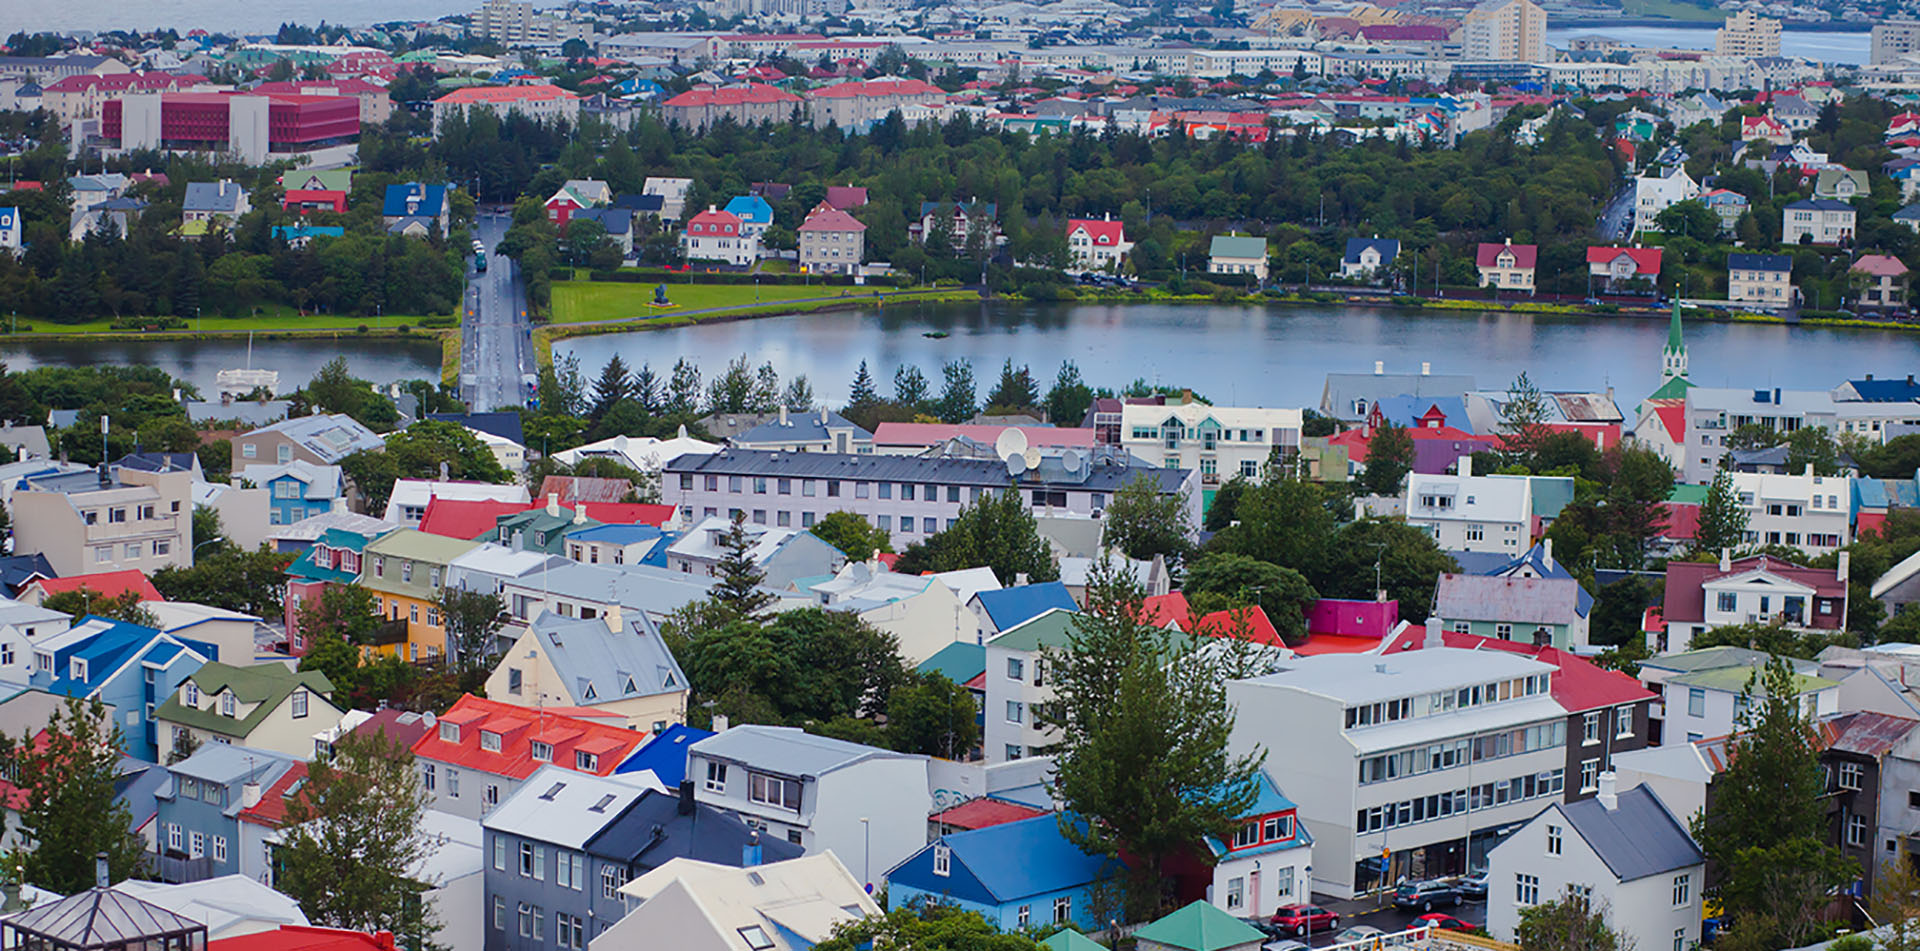 Europe Iceland Reykjavik Harbor colorful buildings along the lake in a beautiful cityscape - luxury vacation destinations